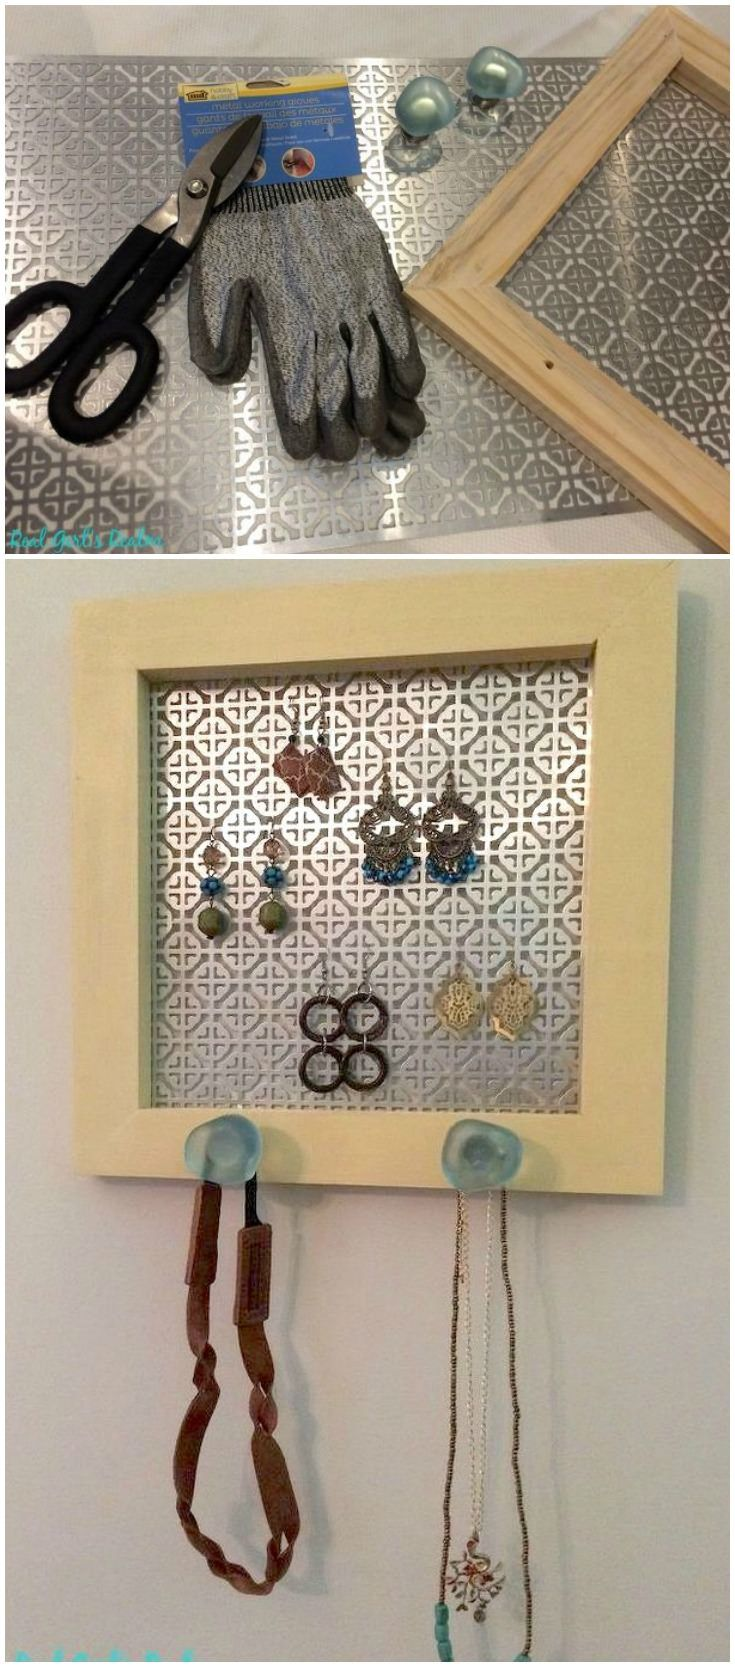 Make a pretty DIY jewelry holder for your earrings, necklaces, and bracelets. All you need is a frame, decorative knobs, and sheet metal!